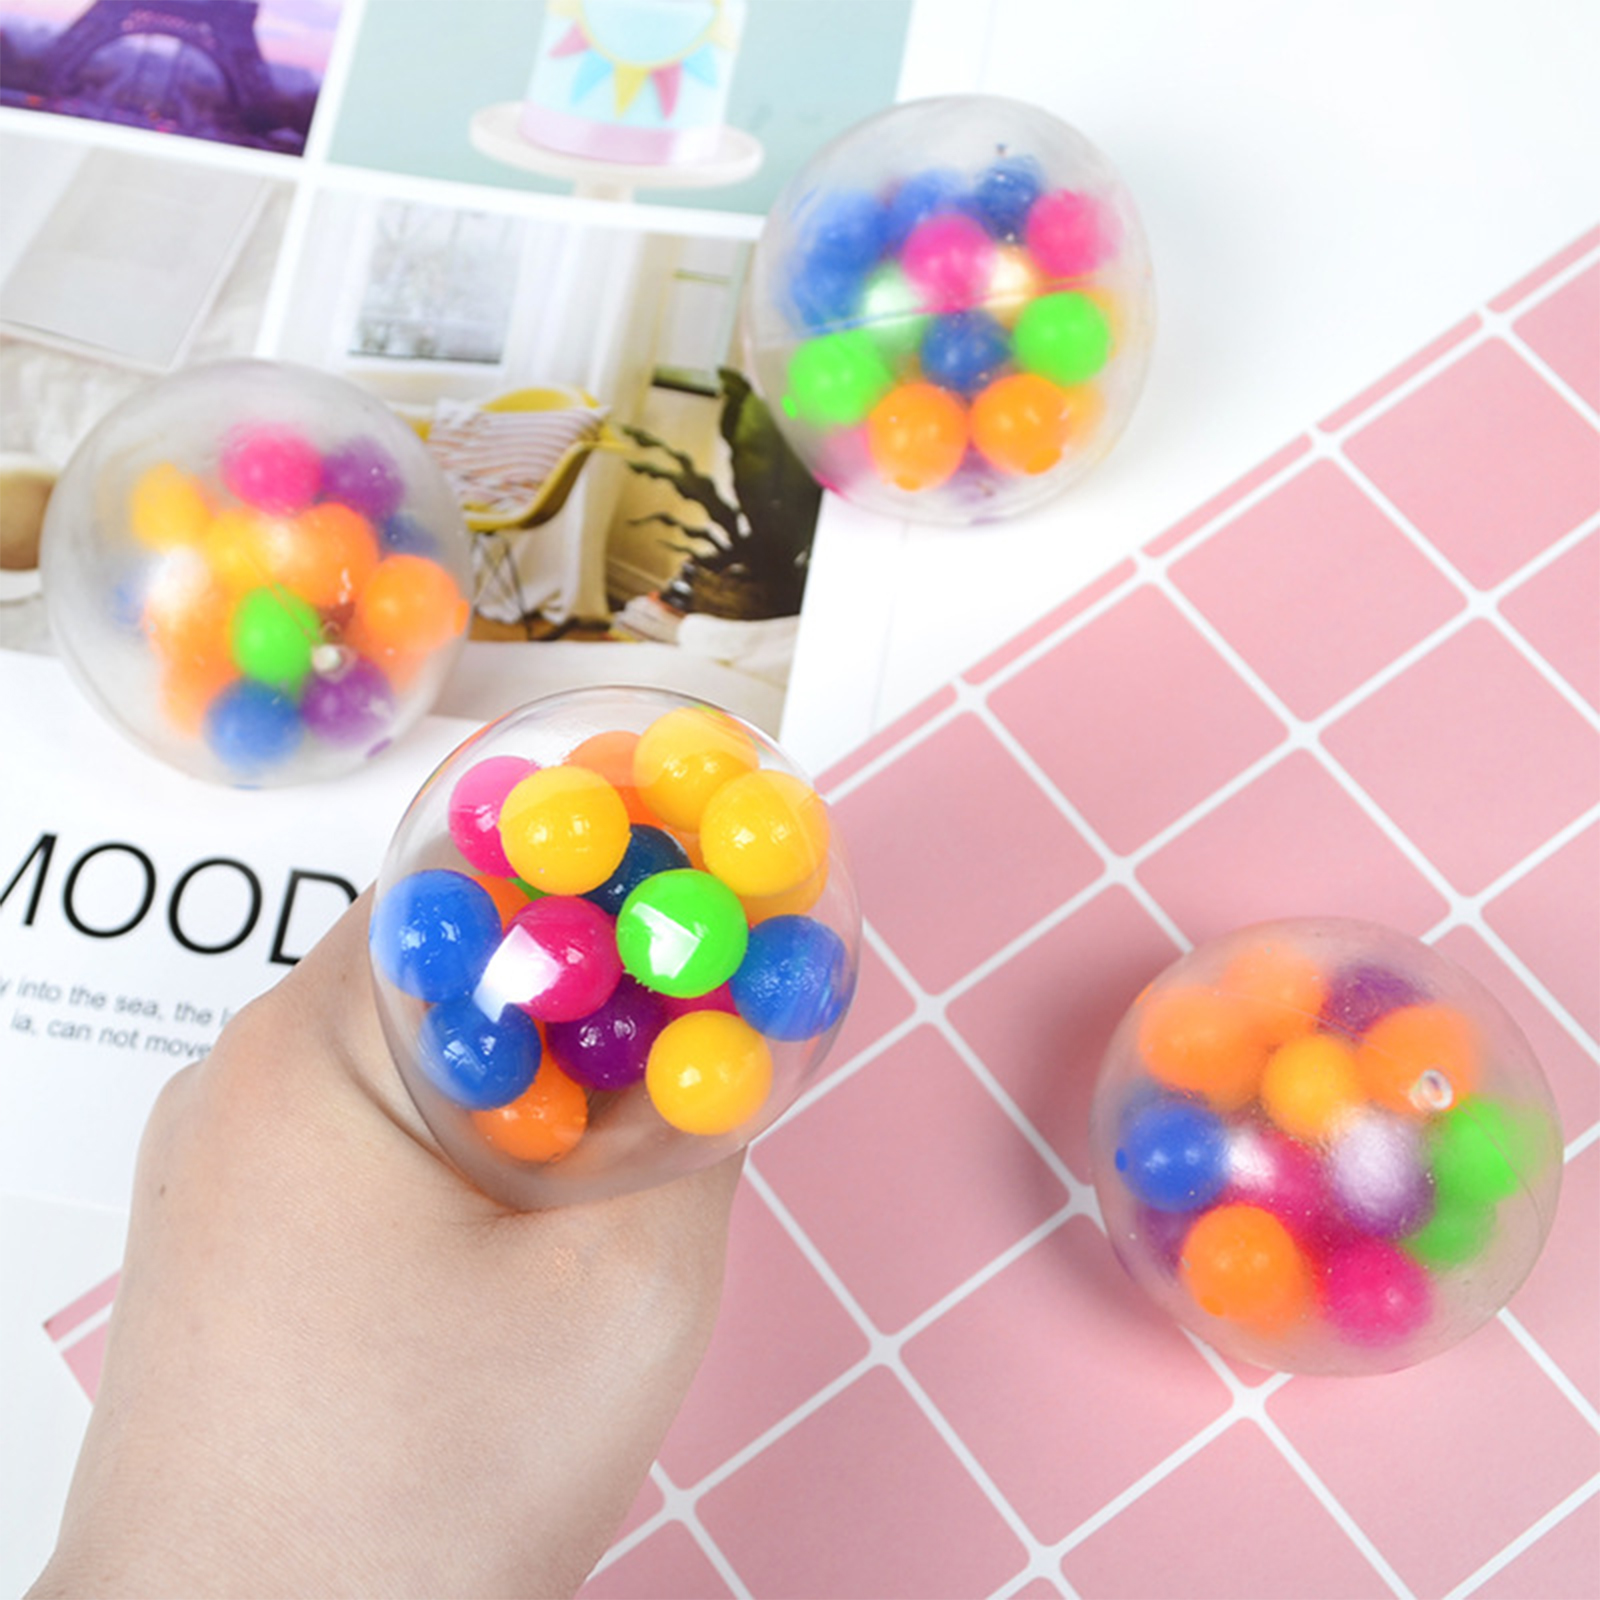 Squishy Toy Anti-Stress-Toys Rainbow-Ball Bead Squeezable-Stress Spongy Hot-Sale img2